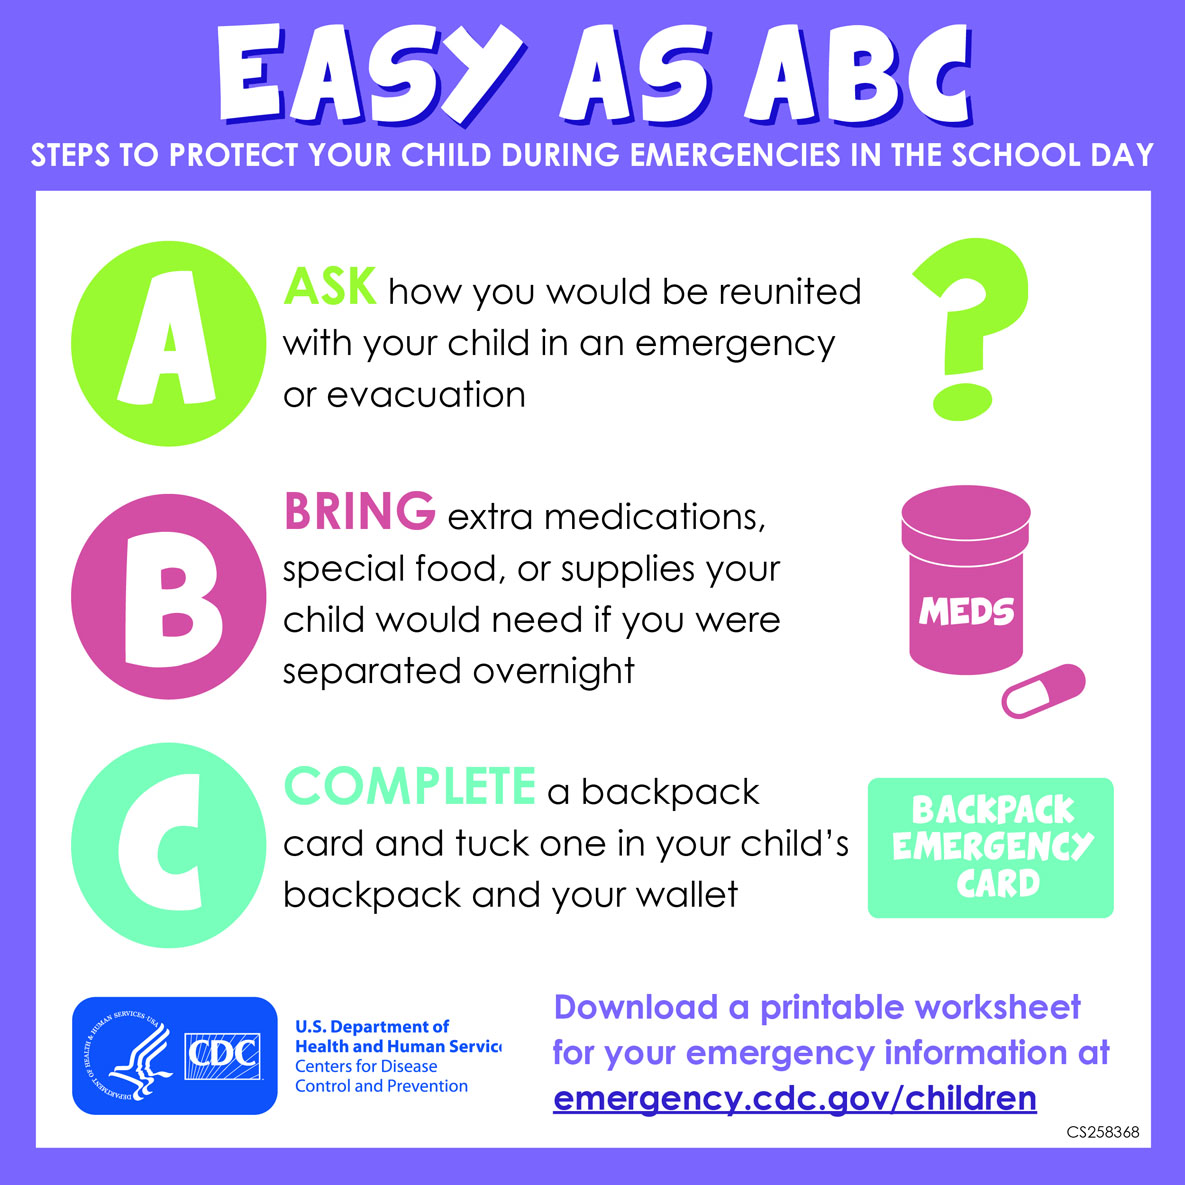 Easy as ABC : three steps to protect your child during emergencies in the school day